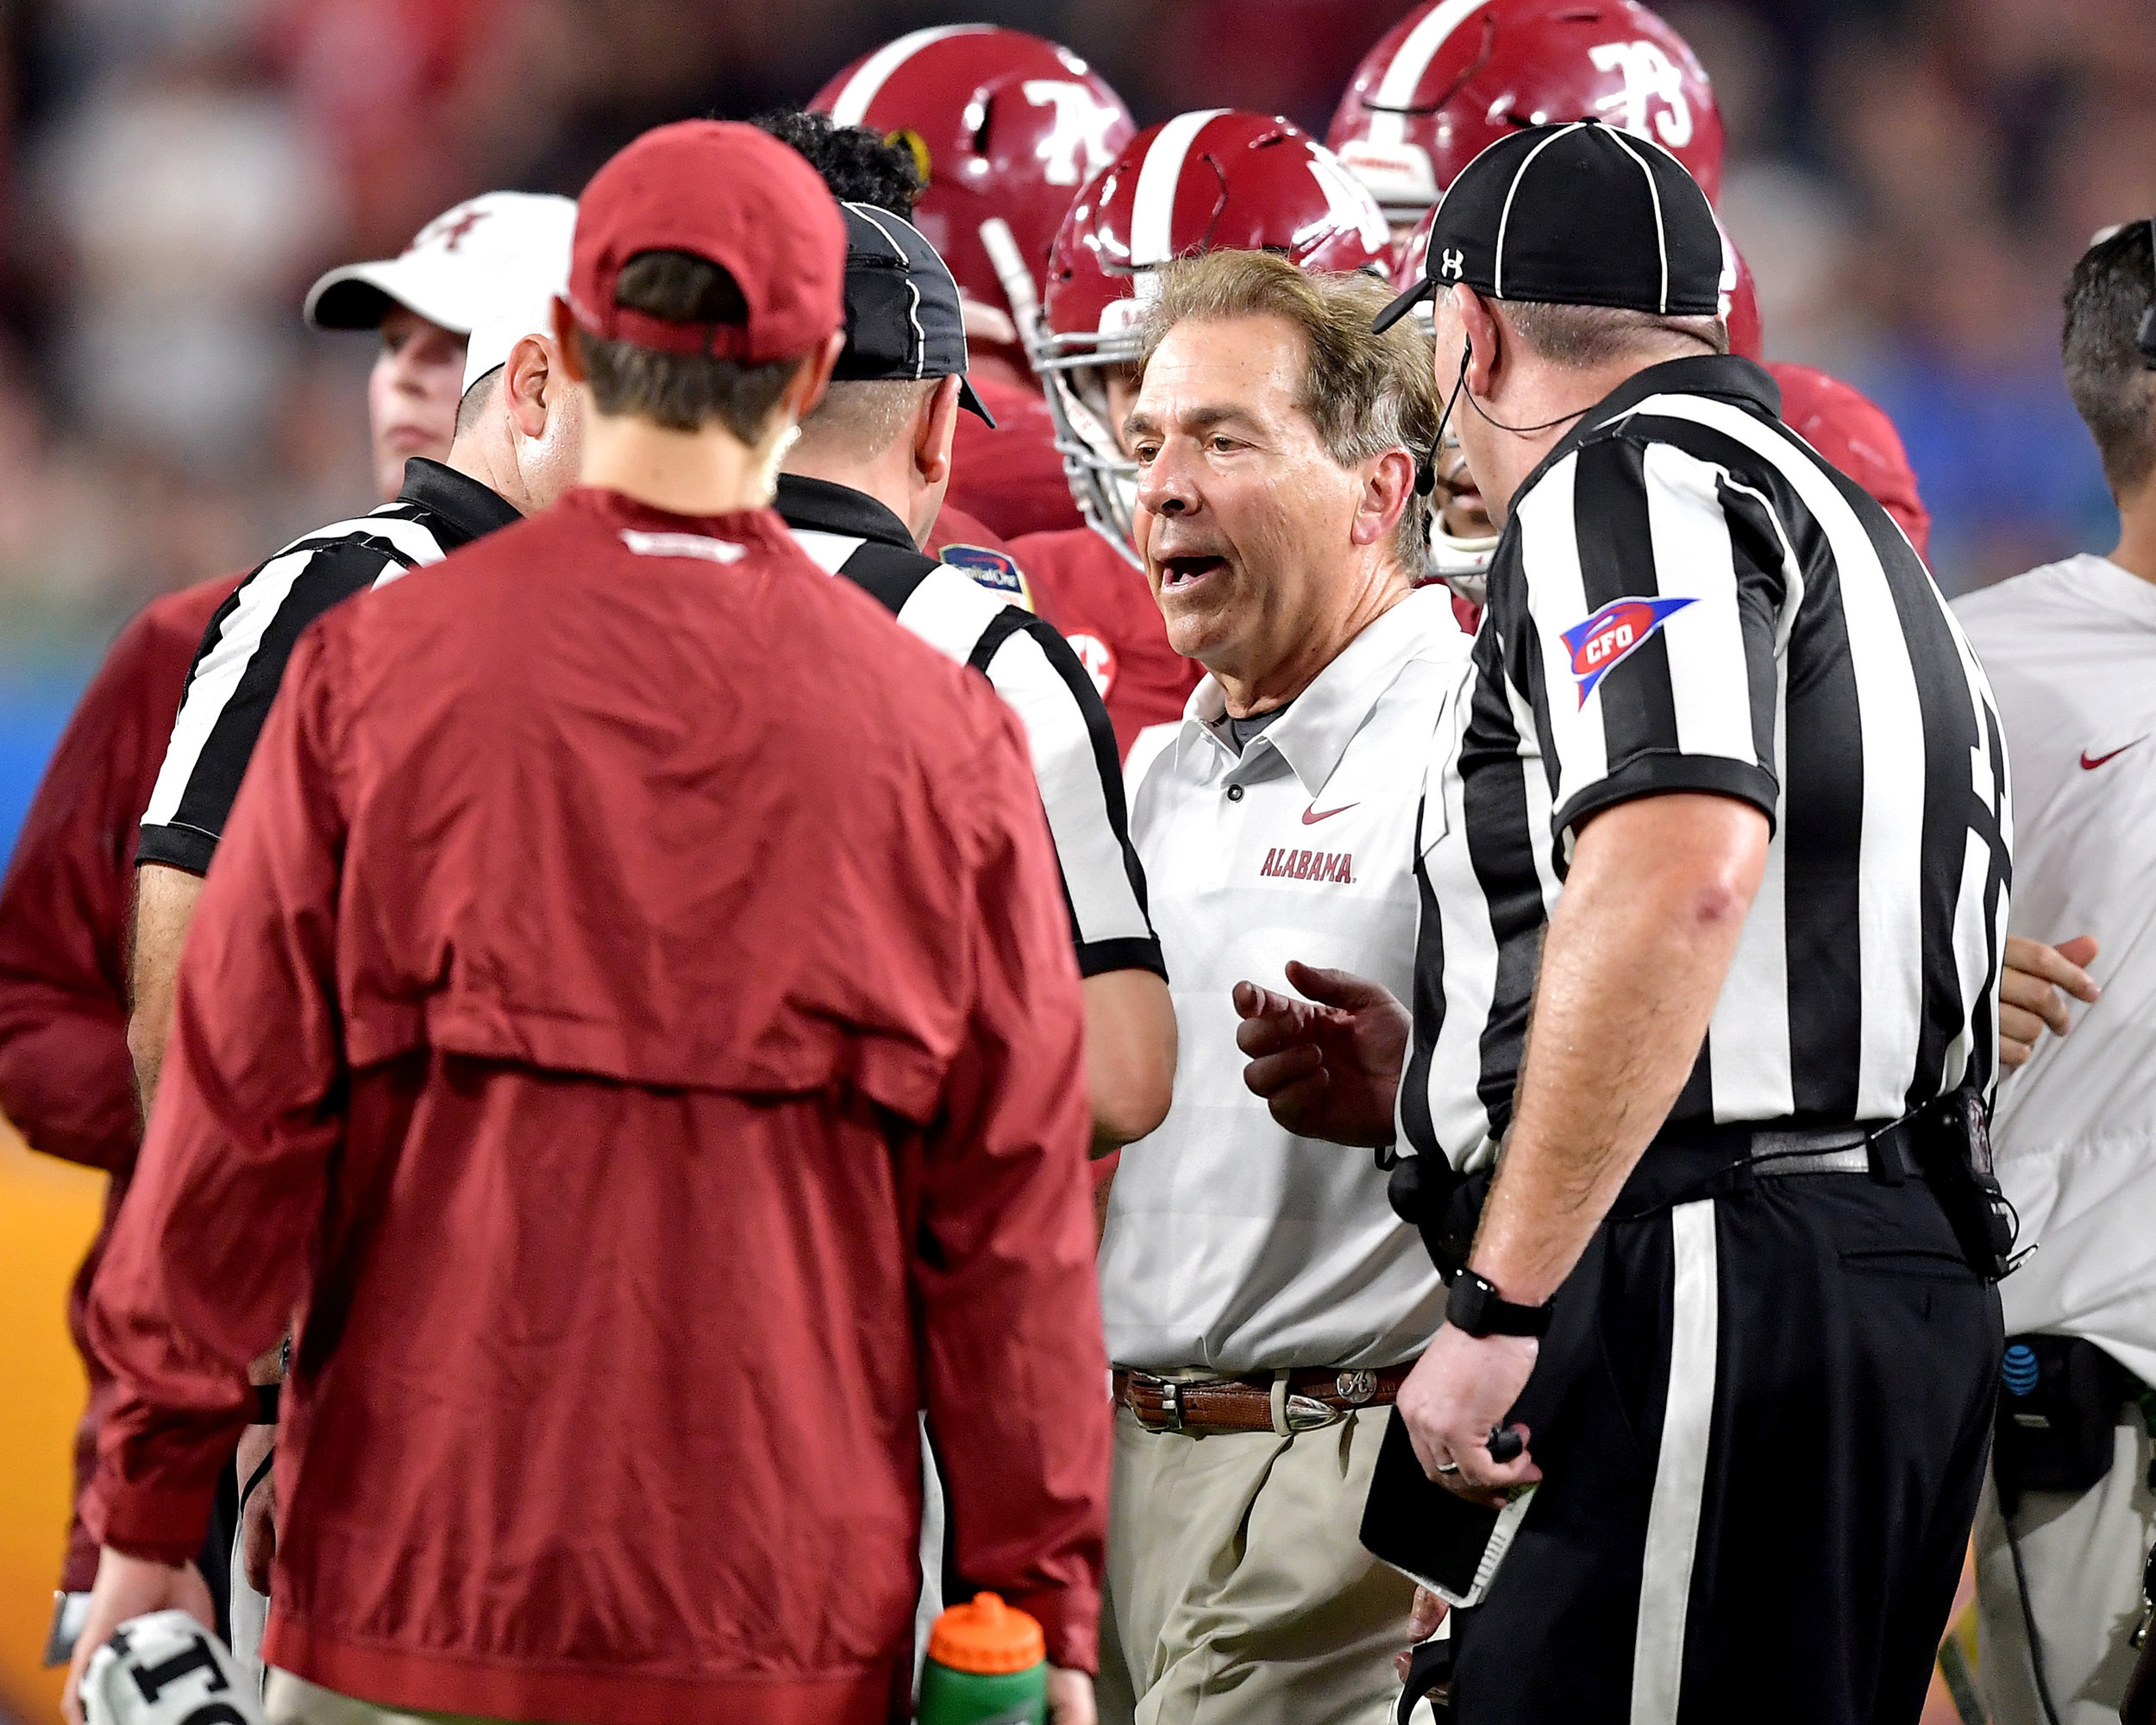 Alabama Crimson Tide head coach Nick Saban discusses a call with officials during the first half of the Capital One Orange Bowl, featuring Alabama and the Oklahoma Sooners, at Hard Rock Stadium in Miami Gardens, Fla., Saturday, Dec. 29, 2018. Alabama wins 45-34. (Photo by Lee Walls)